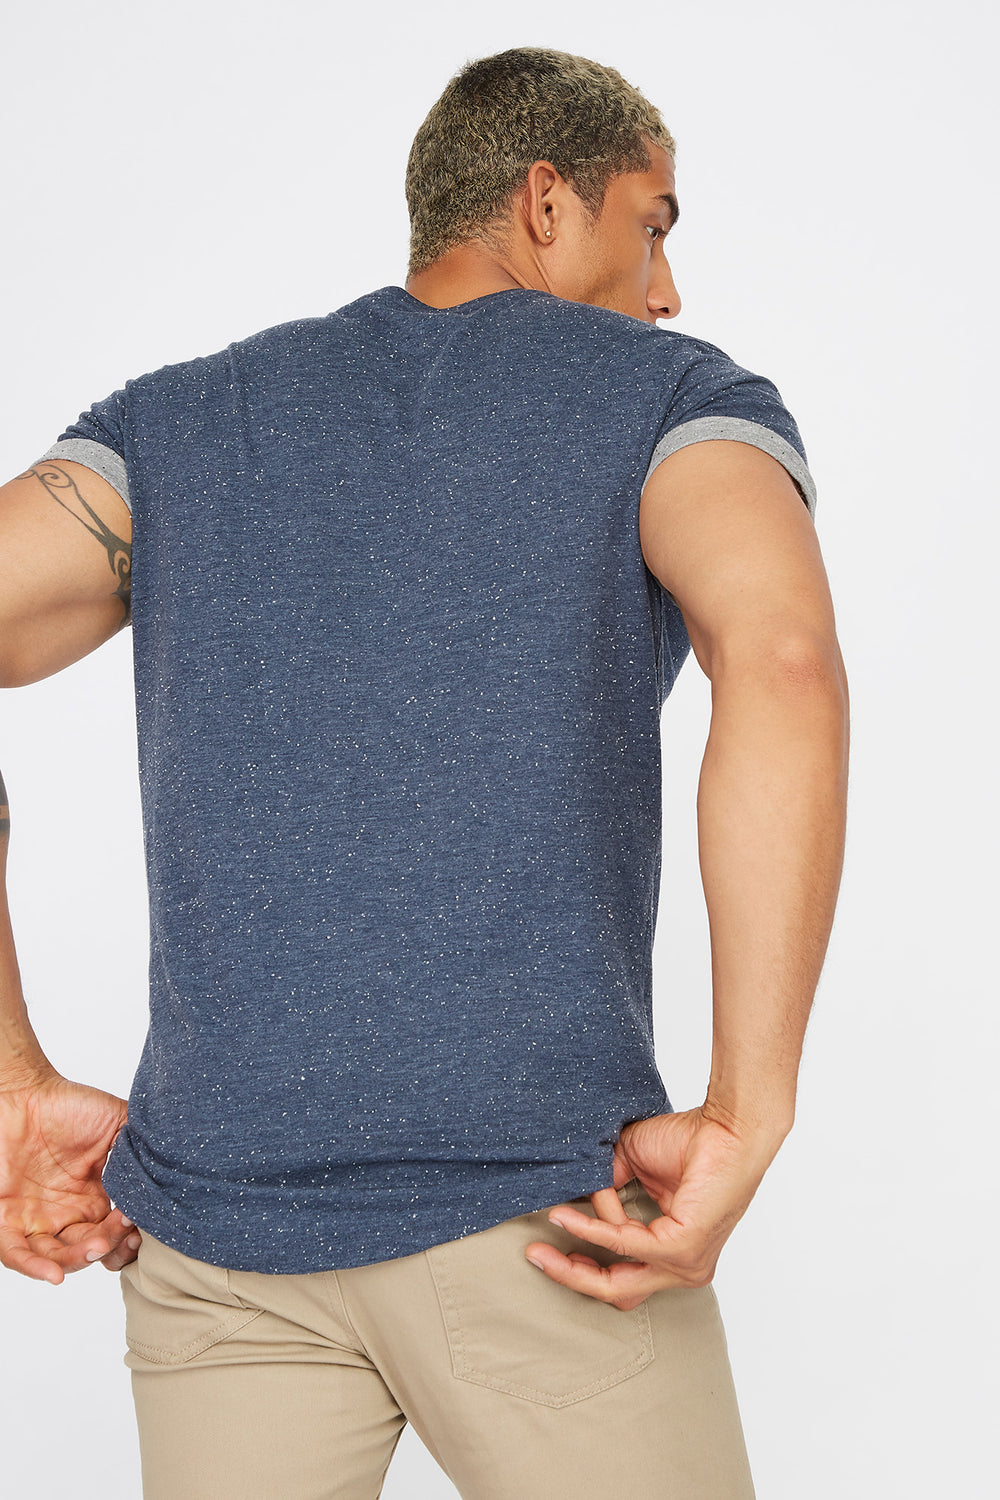 Speckled Cuffed Sleeve T-Shirt Denim Blue